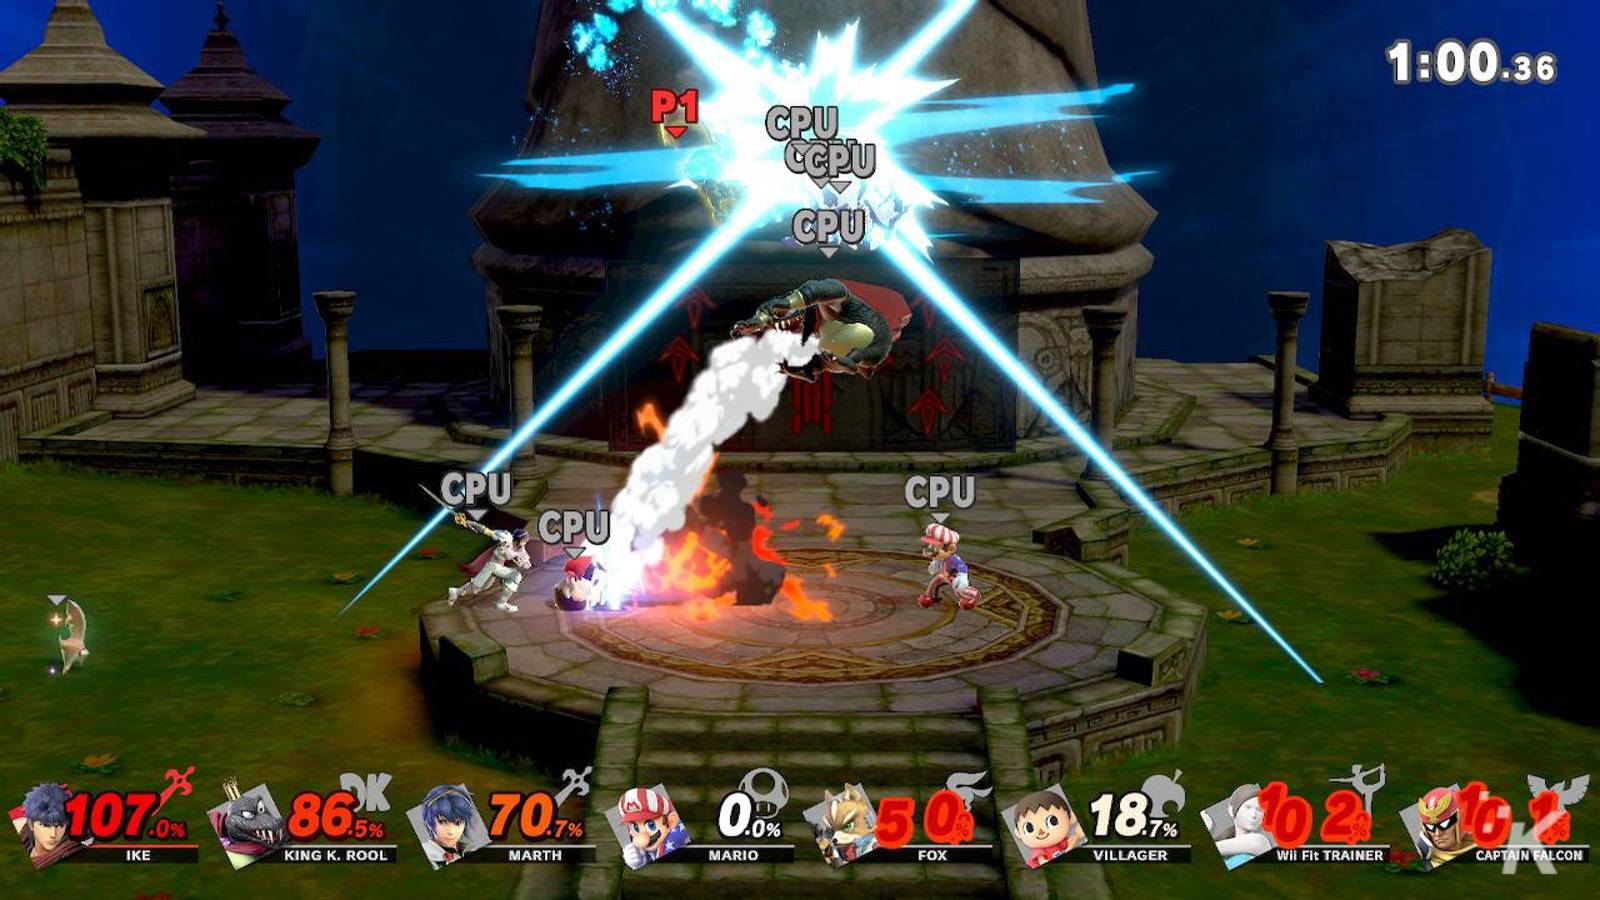 super smash bros ultimate characters fighting on screen